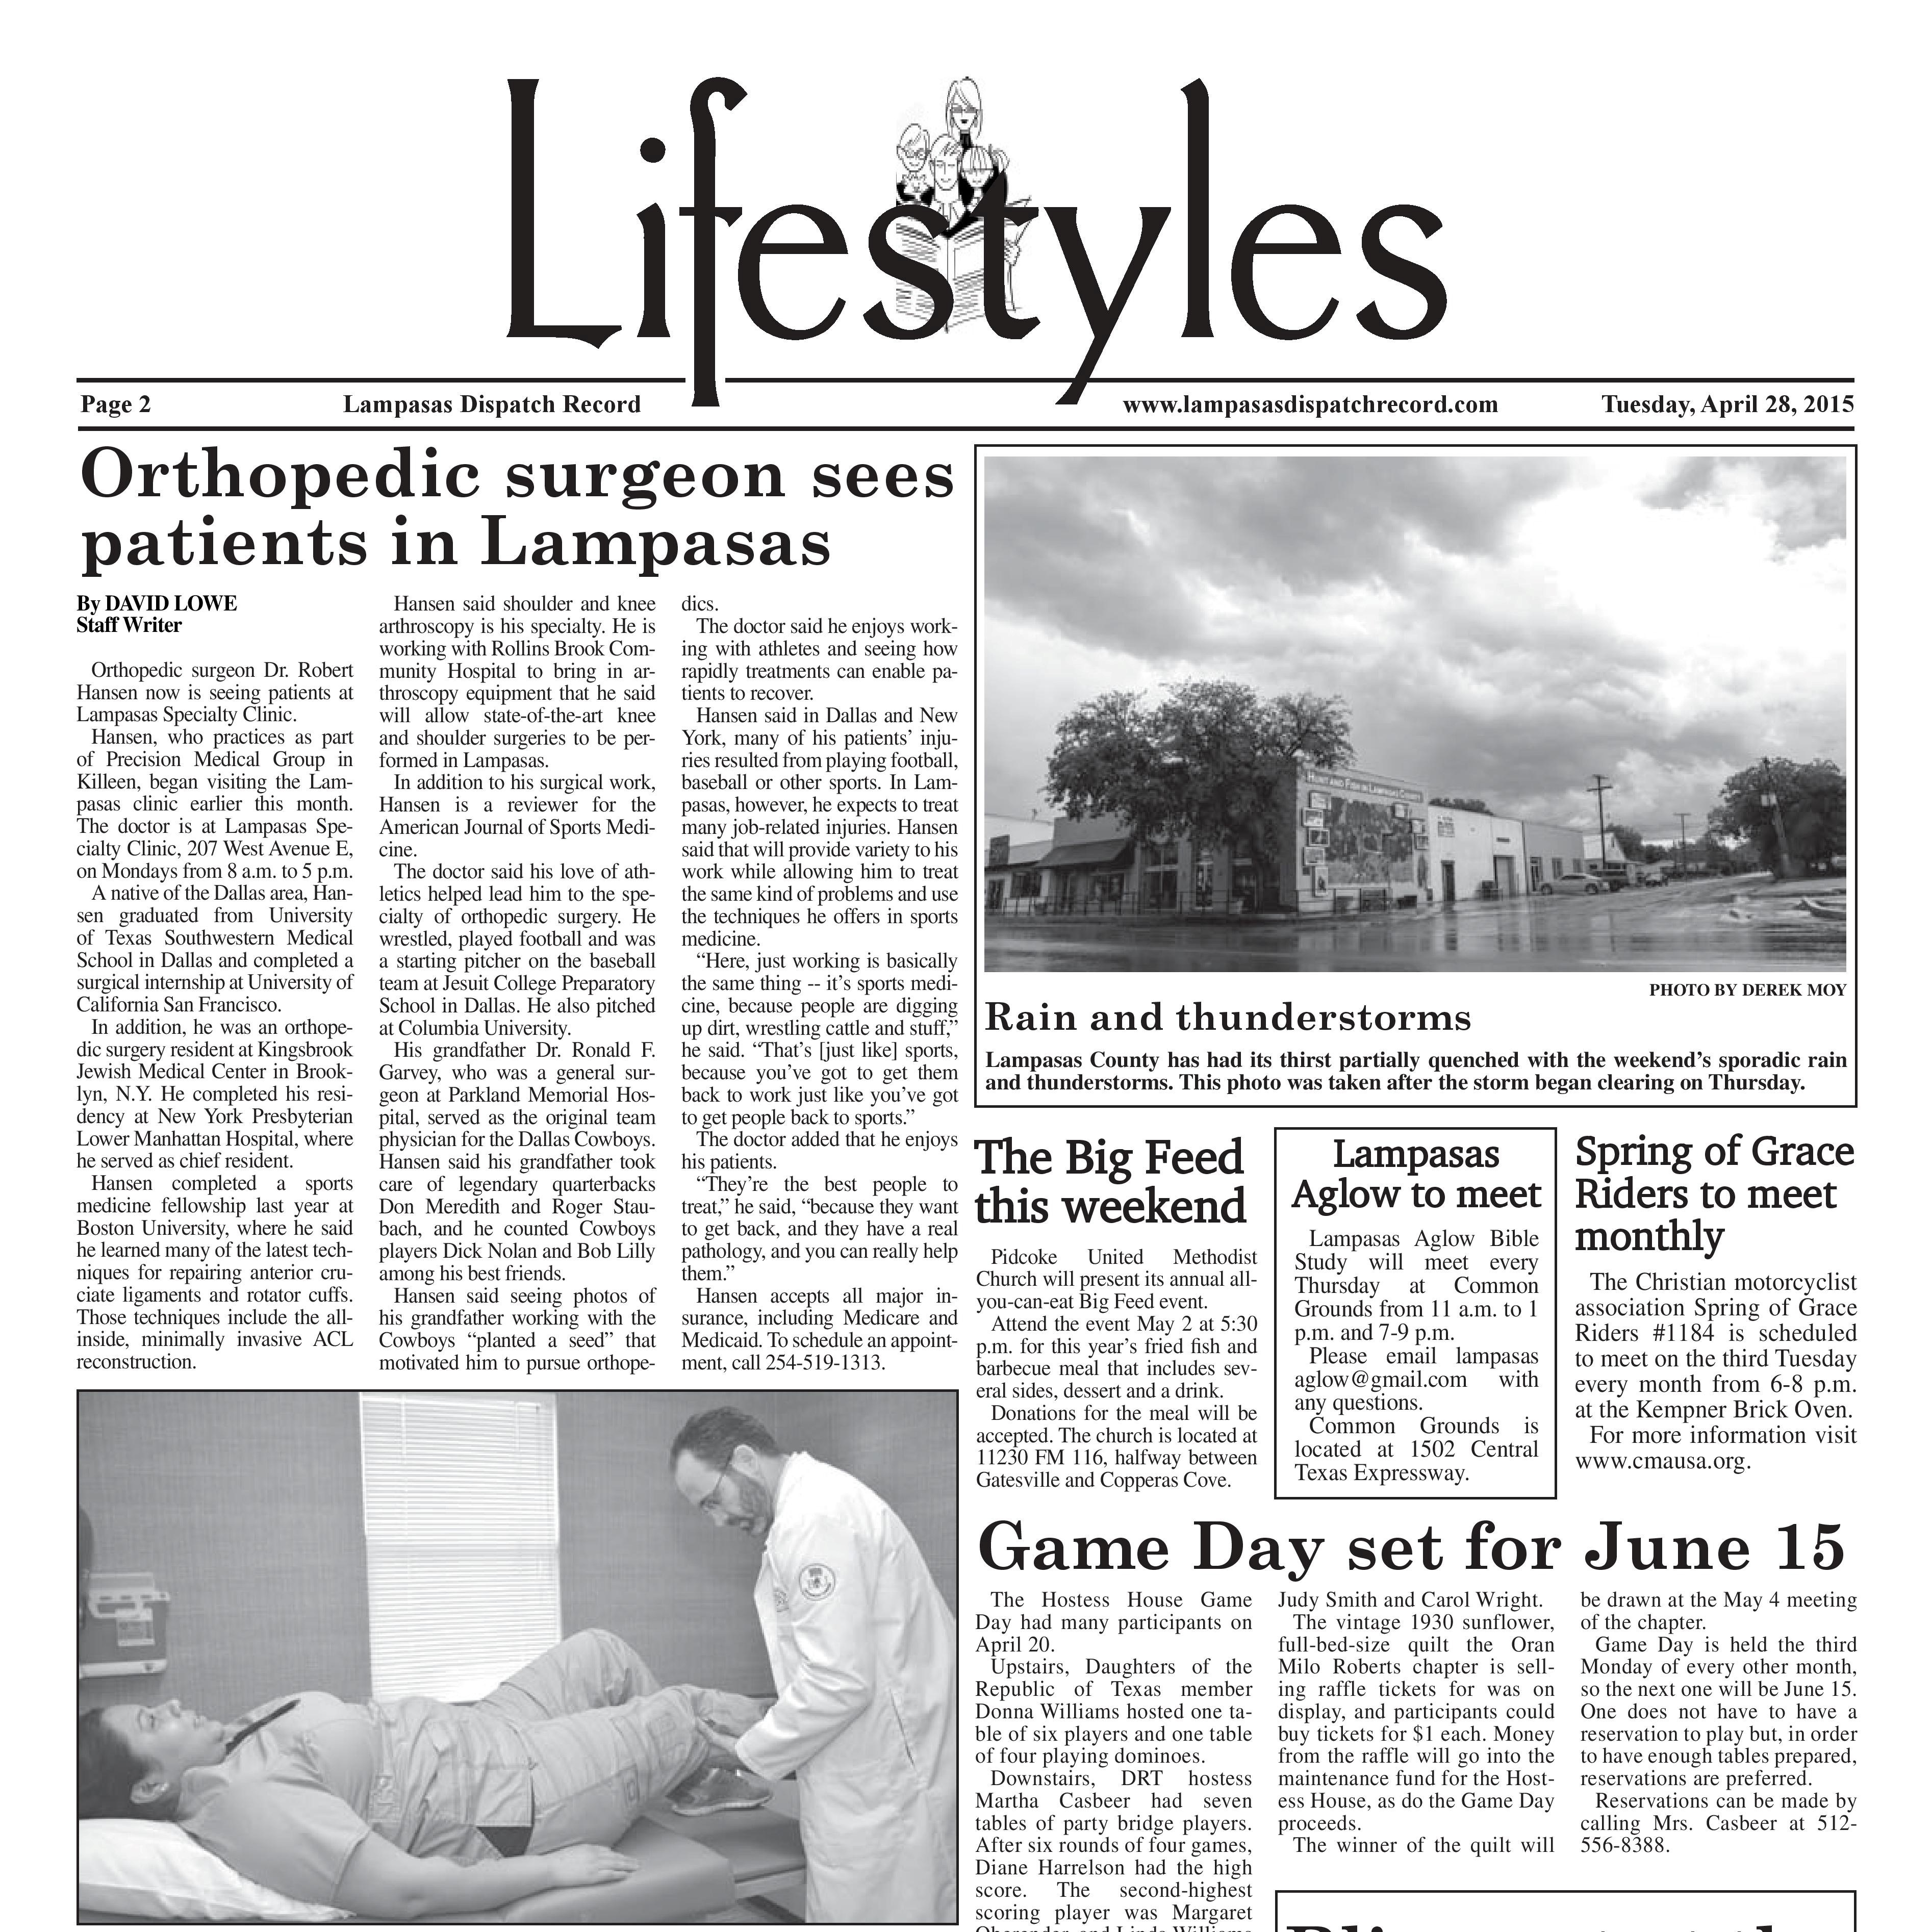 Orthopedic Surgeon Sees Patients in Lampasas